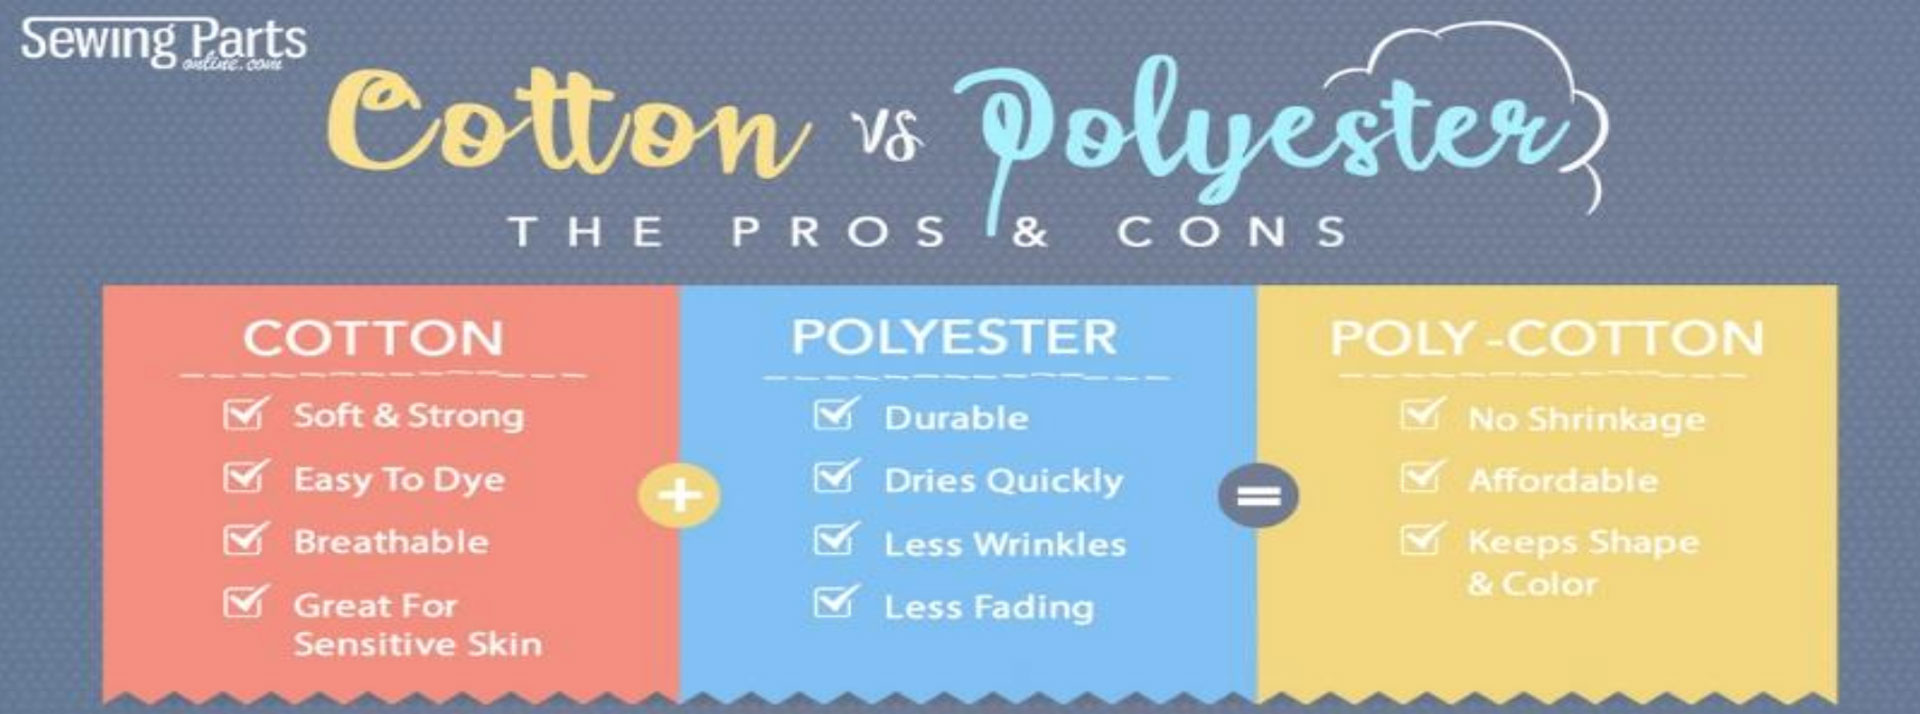 A chart revealing characteristics of cotton, polyester and poly-cotton